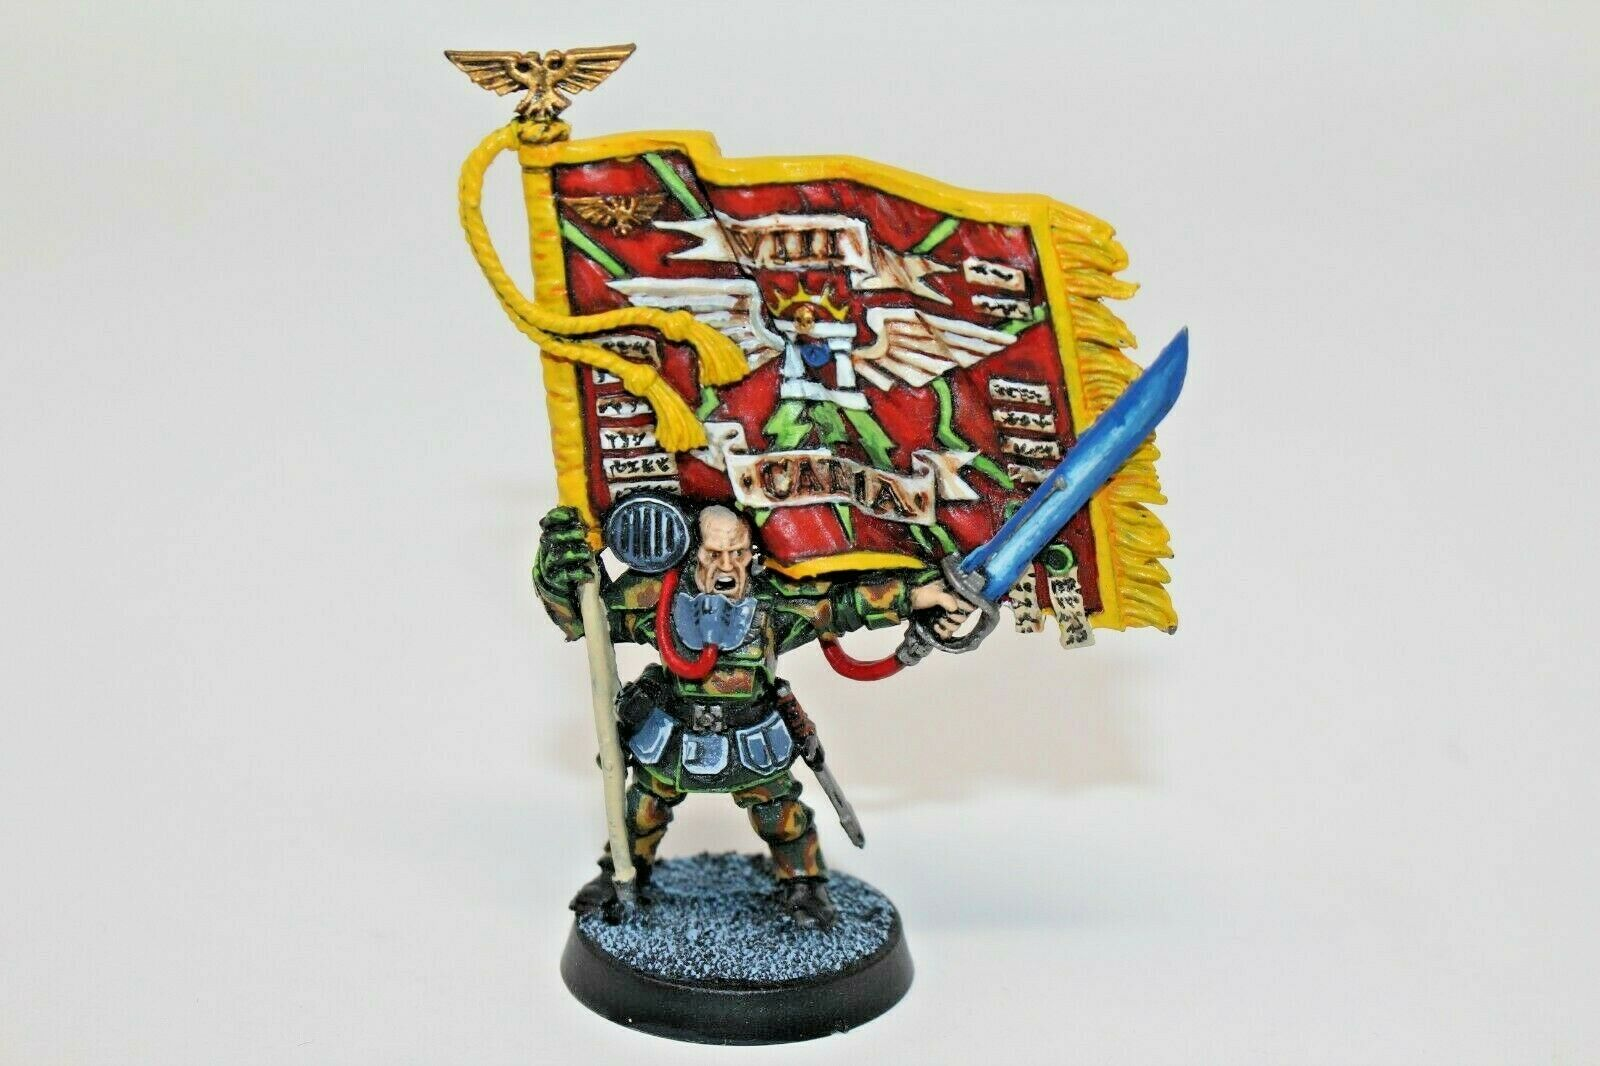 Warhammer  Imperial Guard Colour Sergeant Kell Well Painted Metal - JYS11  fino al 42% di sconto